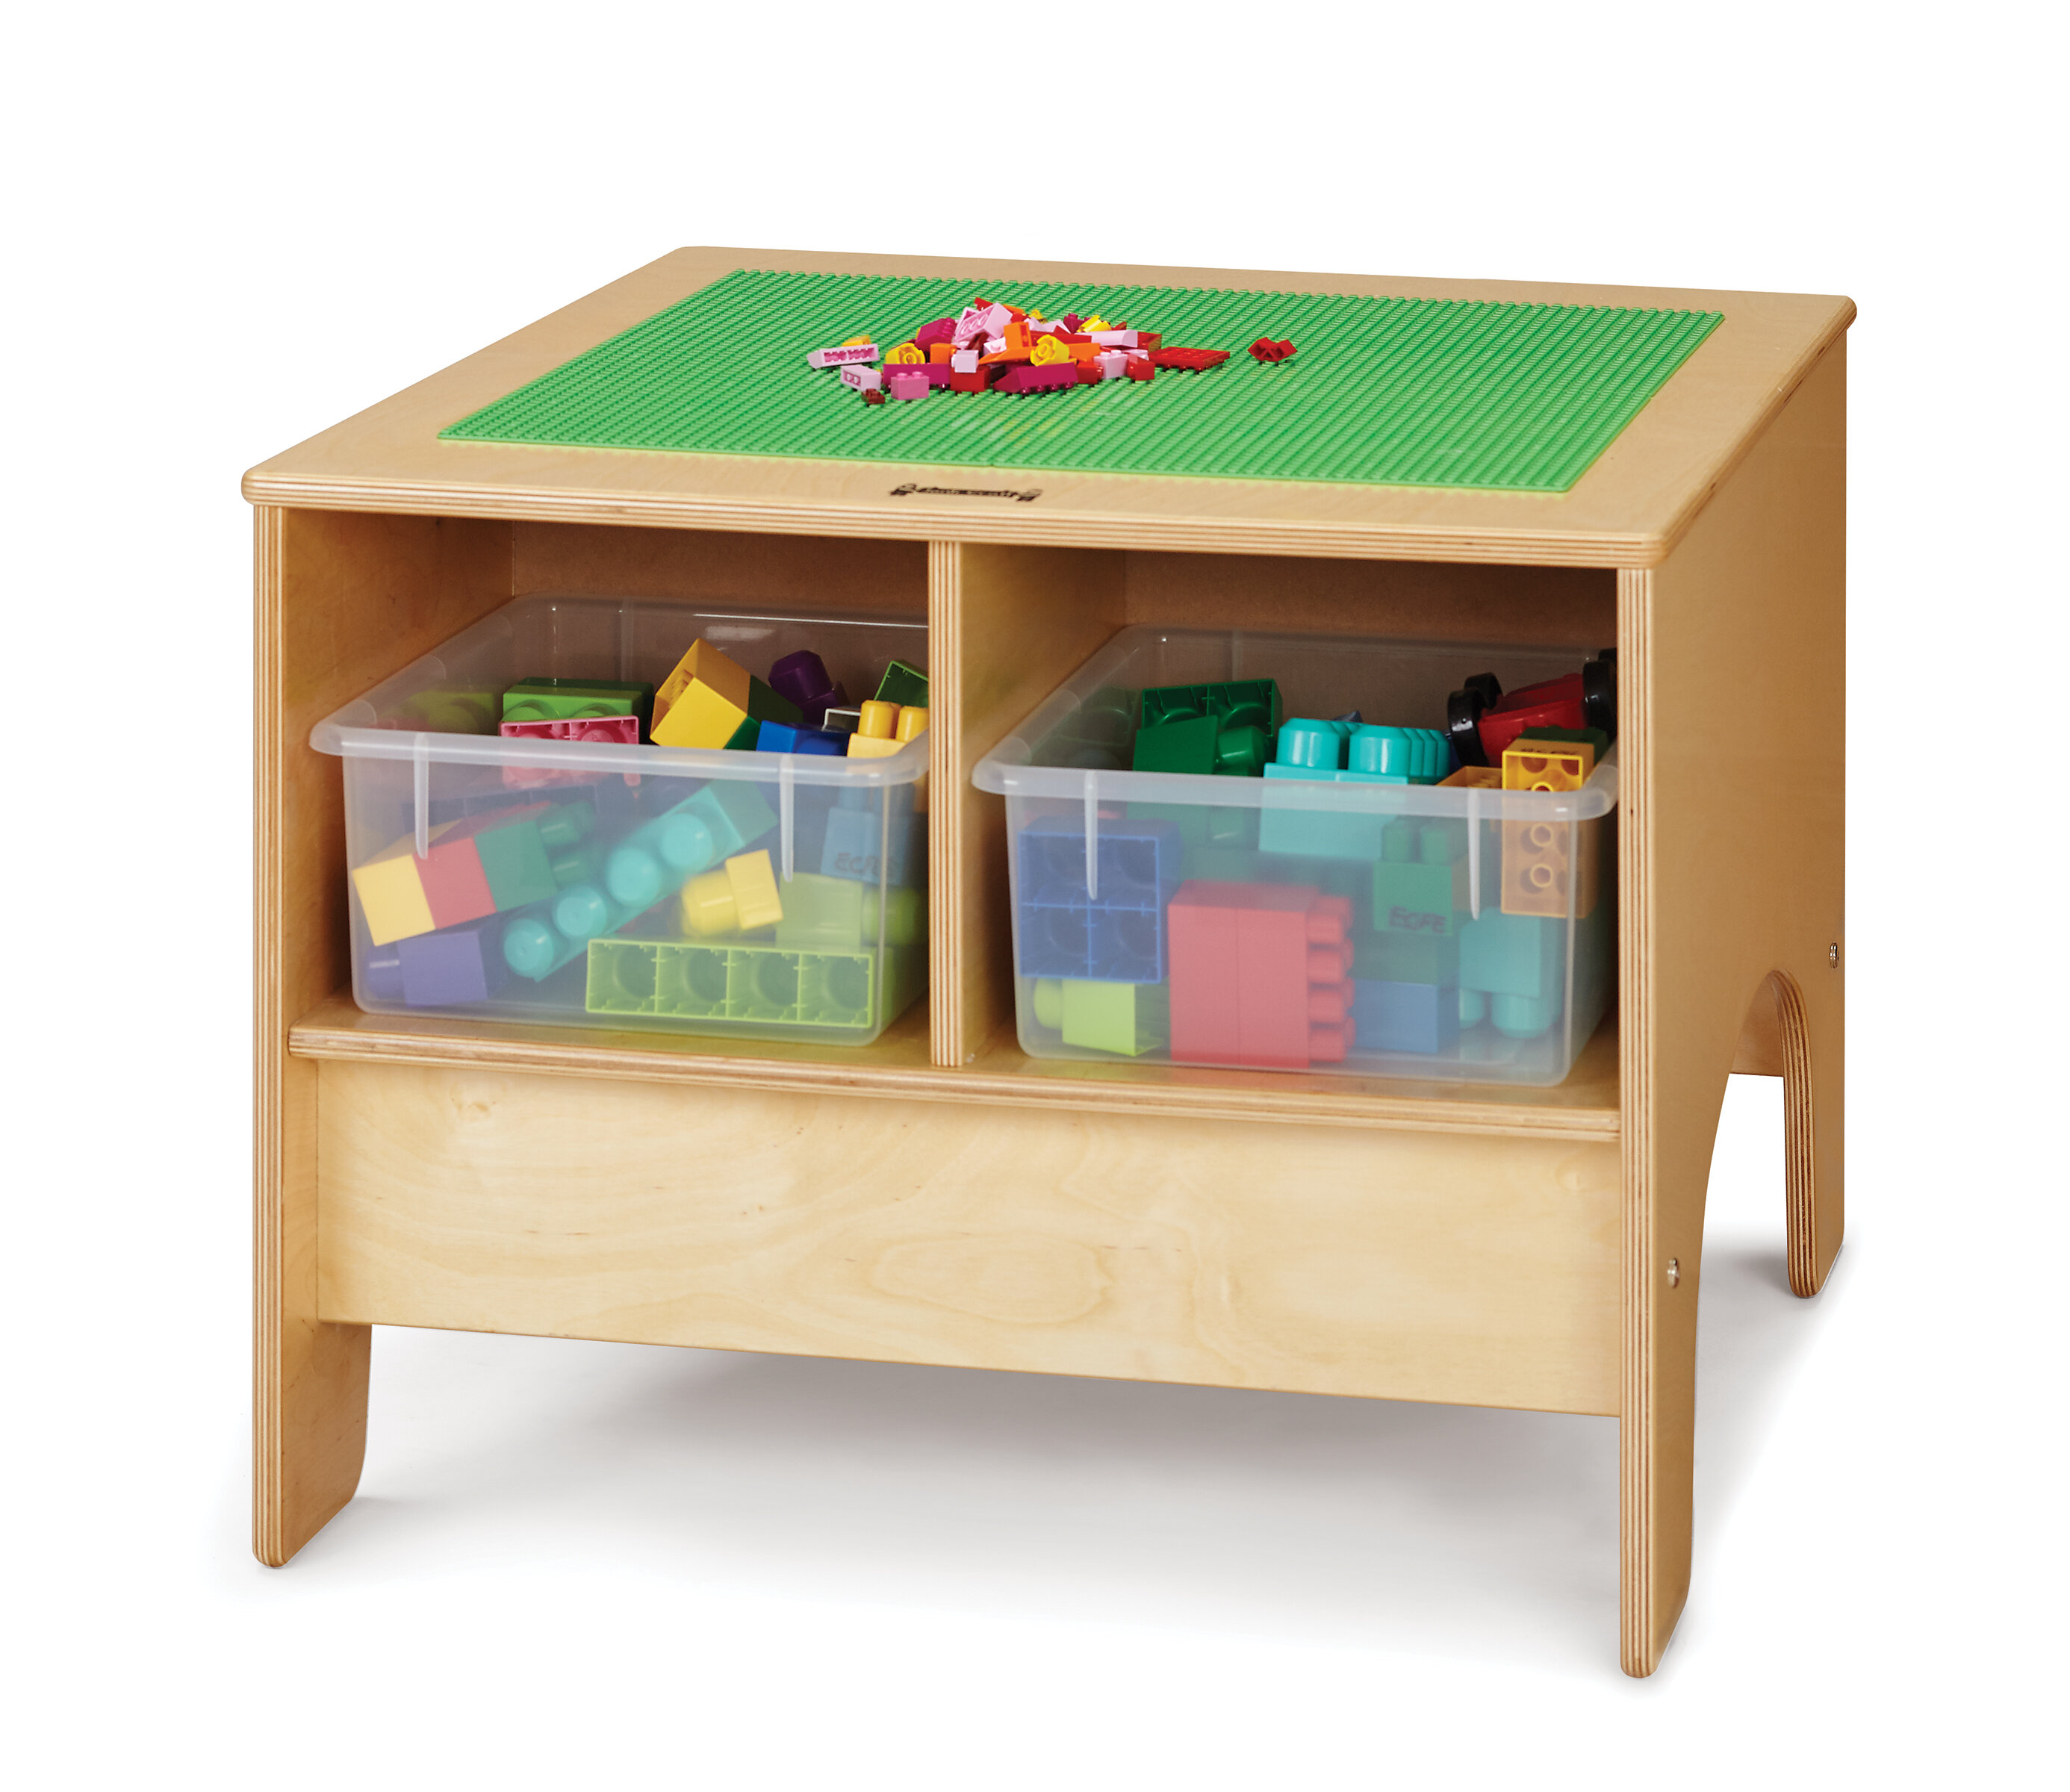 Kydz Building Table Lego Compatible With Tubs